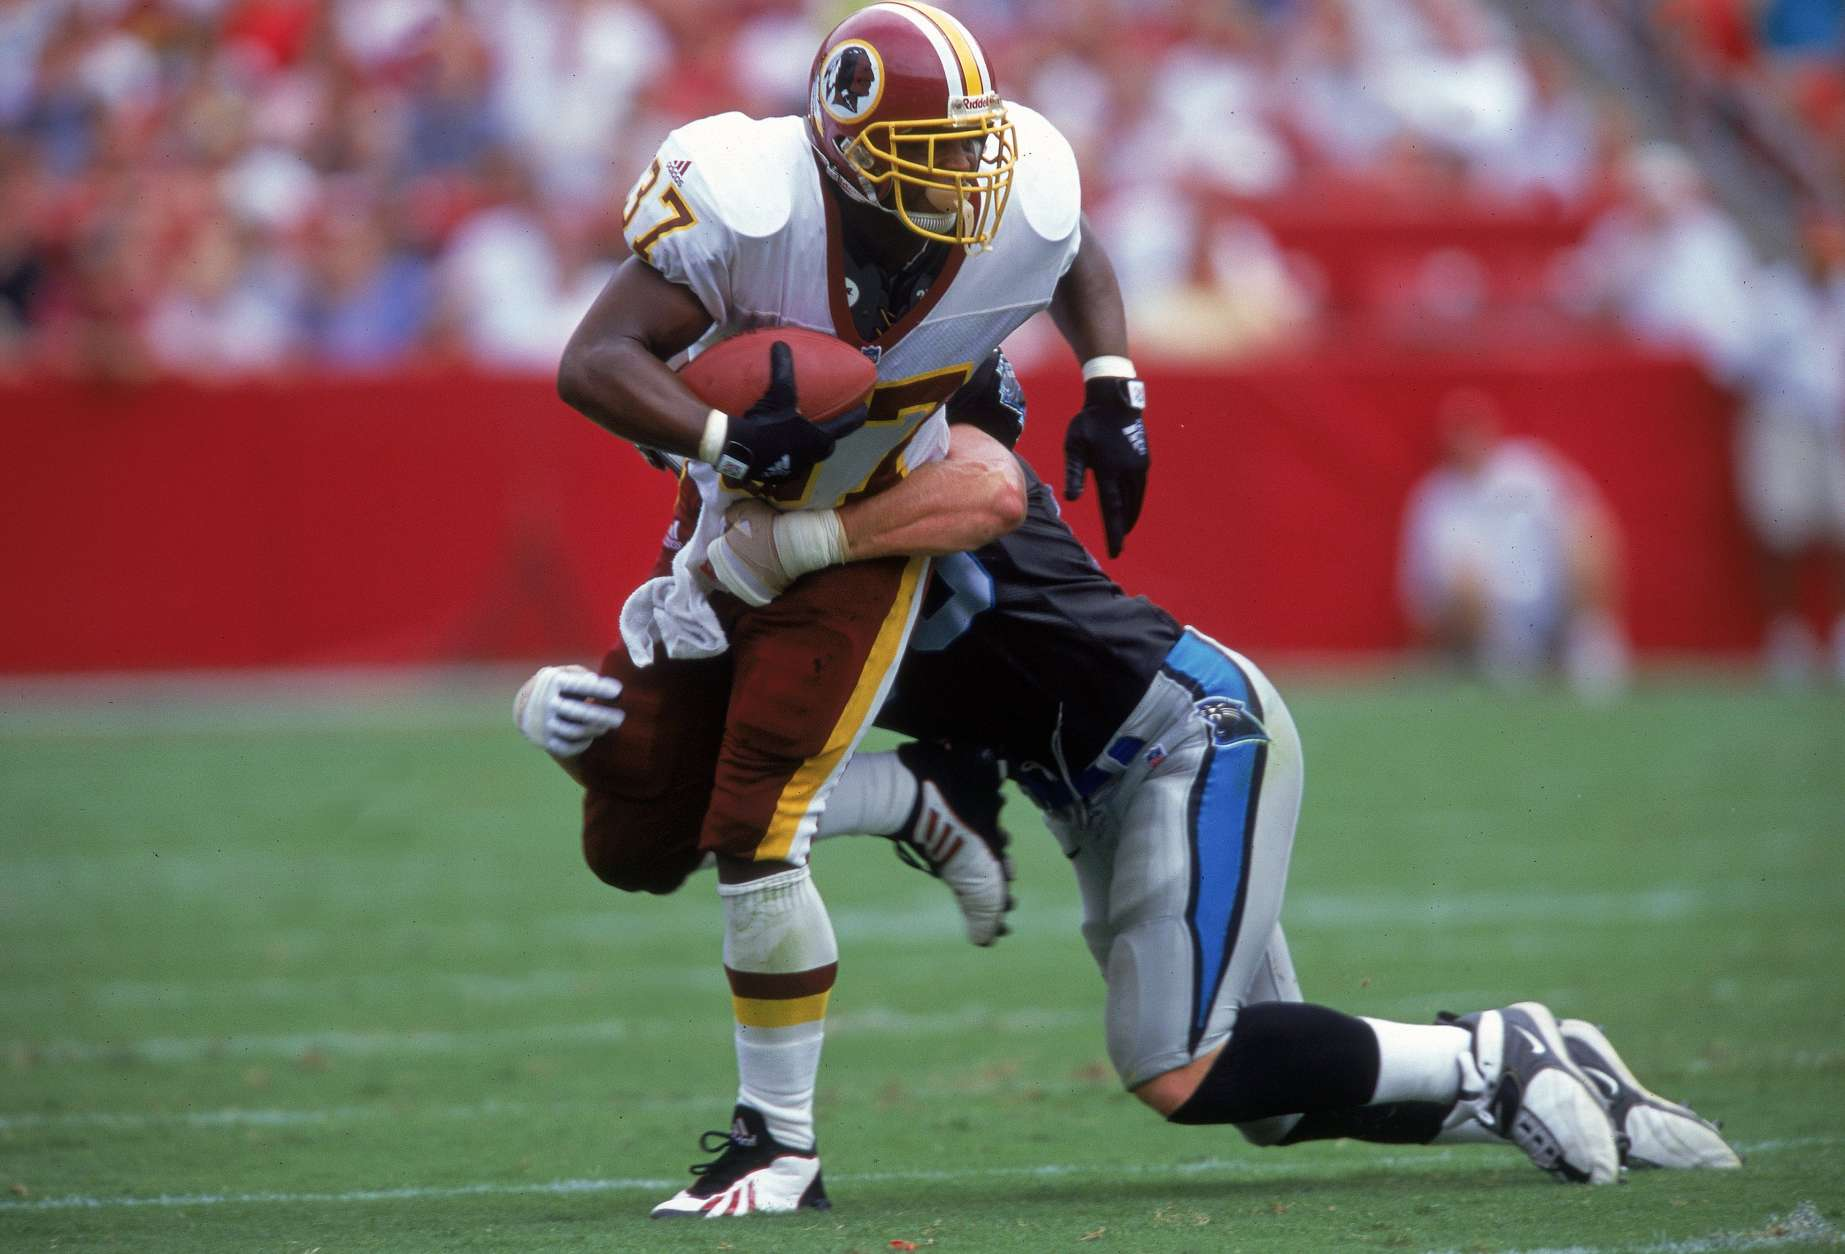 3 Sep 2000: Larry Centers #37 of the Washington Redskins tries to get out of a tackle during a game against the Carolina Panthers at FedEx Field in Landover, Maryland..  The Redskins defeated the Panthers 20-17.Mandatory Credit: Ezra O. Shaw  /Allsport